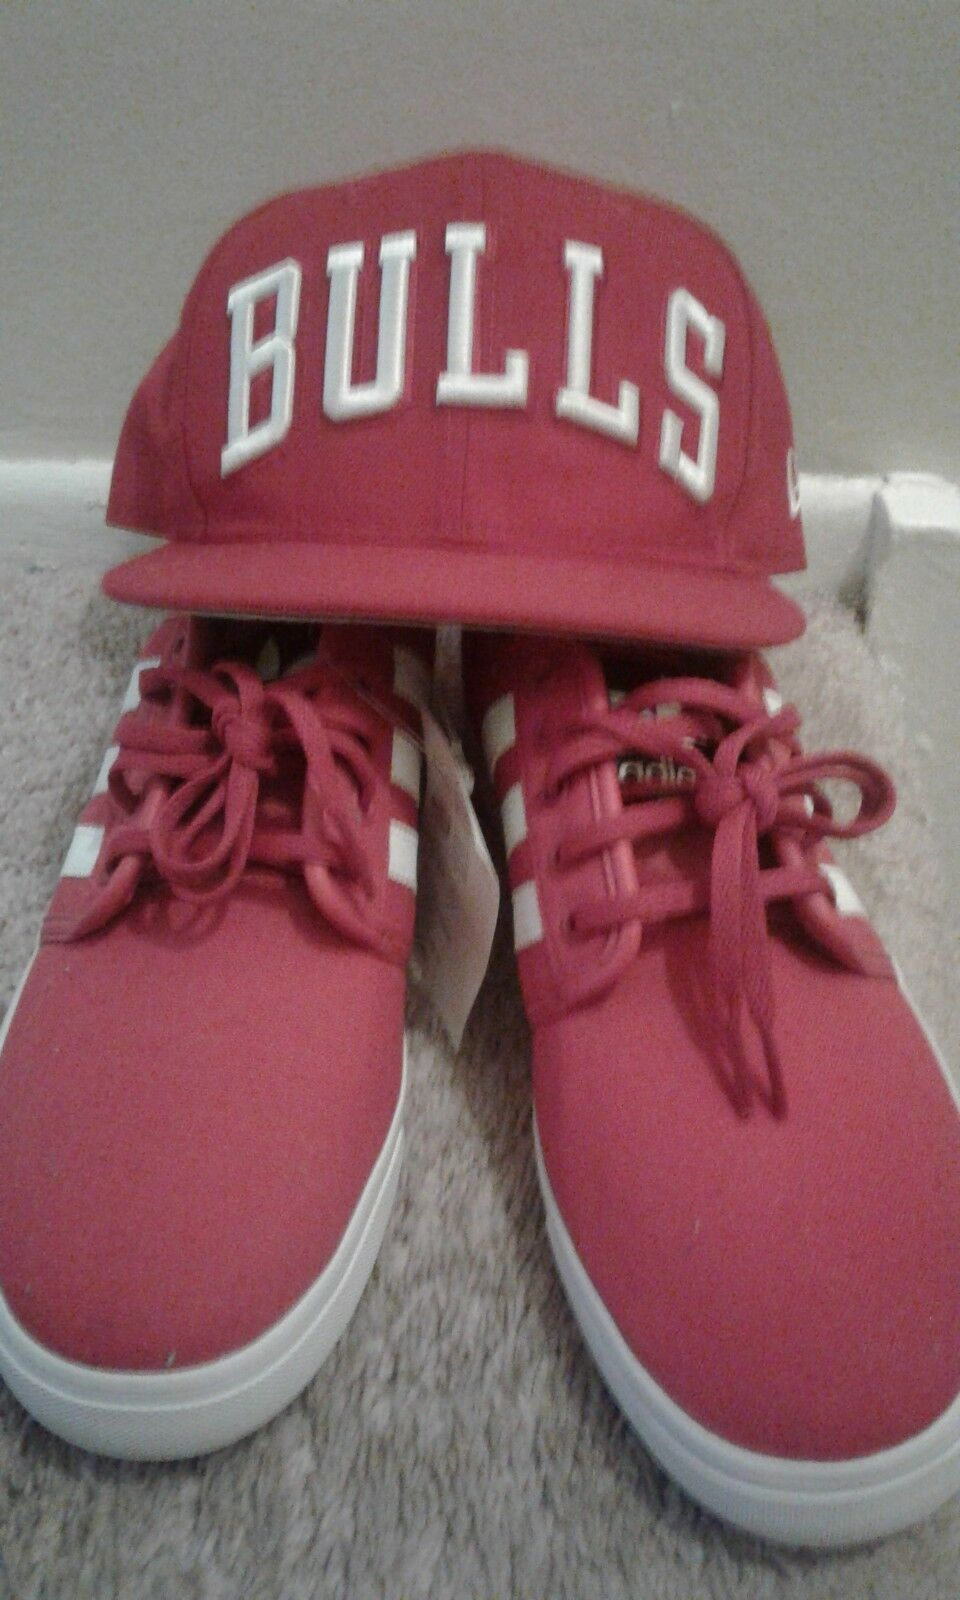 Adidas Men's shoes, Red with White stripes Size 9 wit free bulls hat.